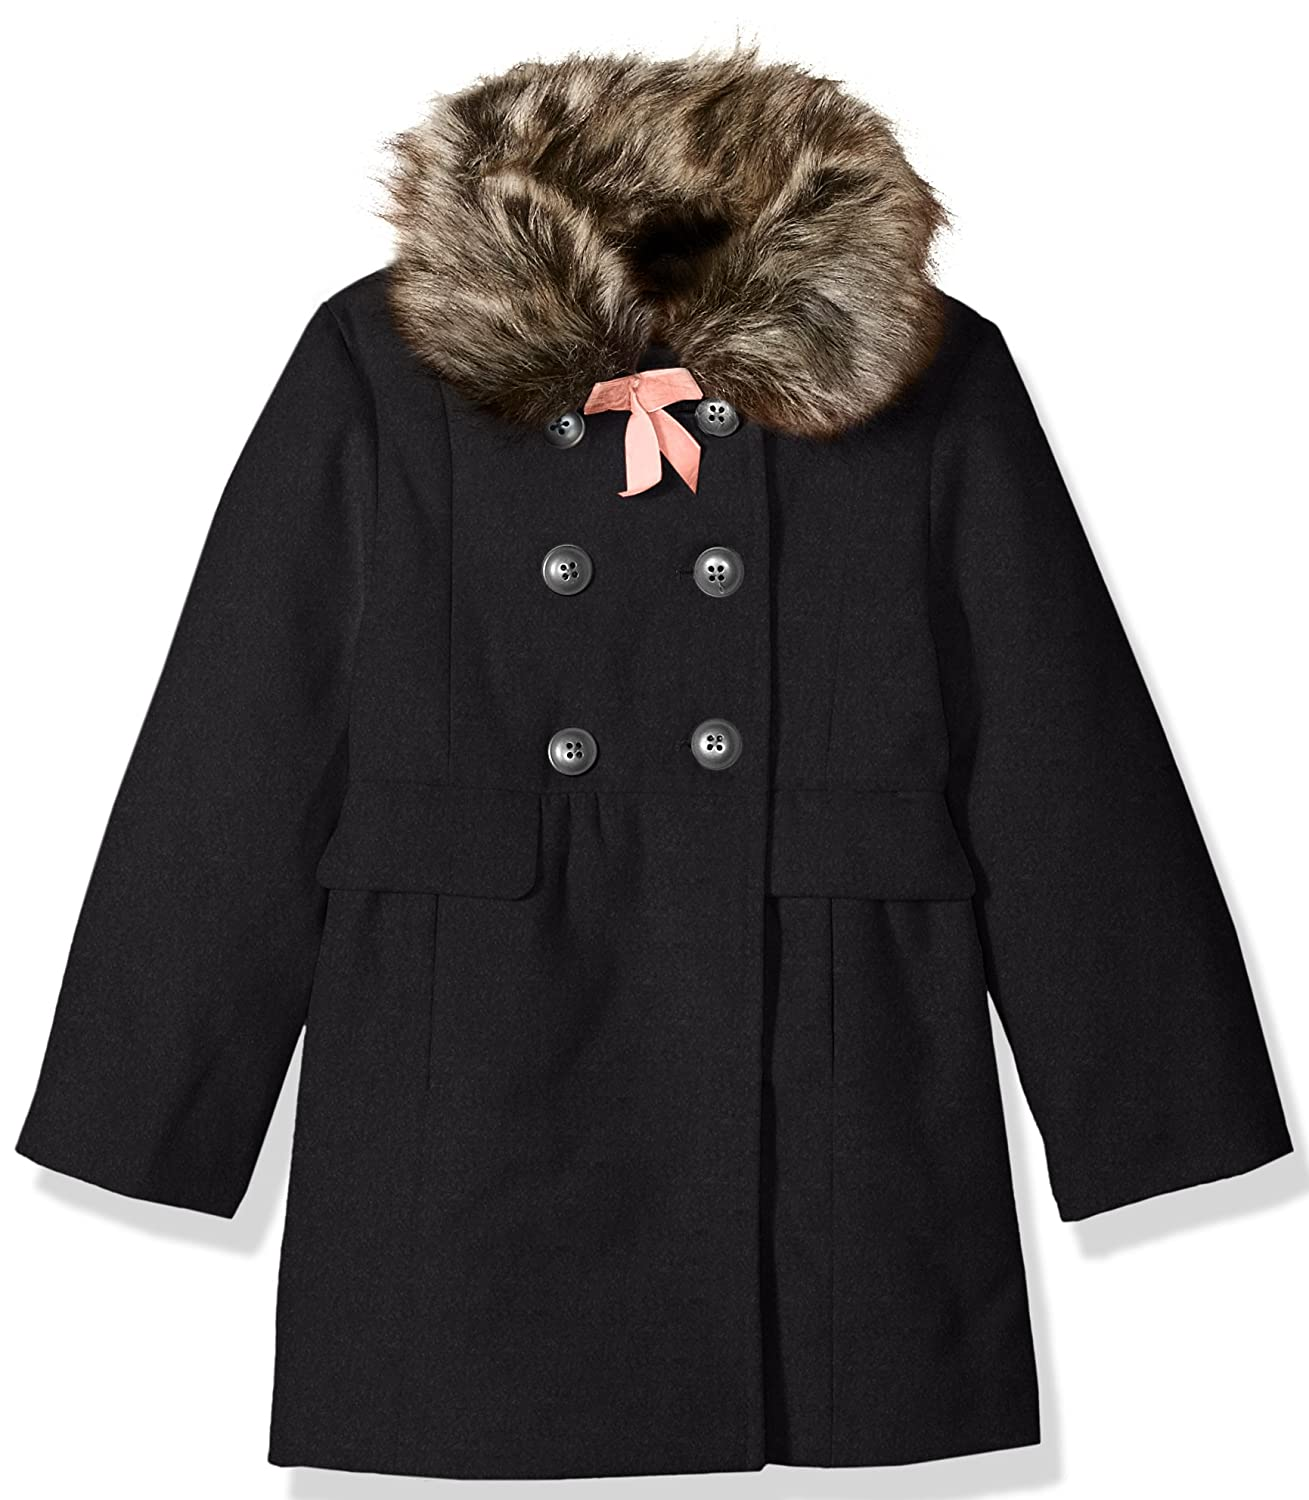 Fancy Jessica Simpson girls Sweet Faux Wool Winter Jacket Coat ...